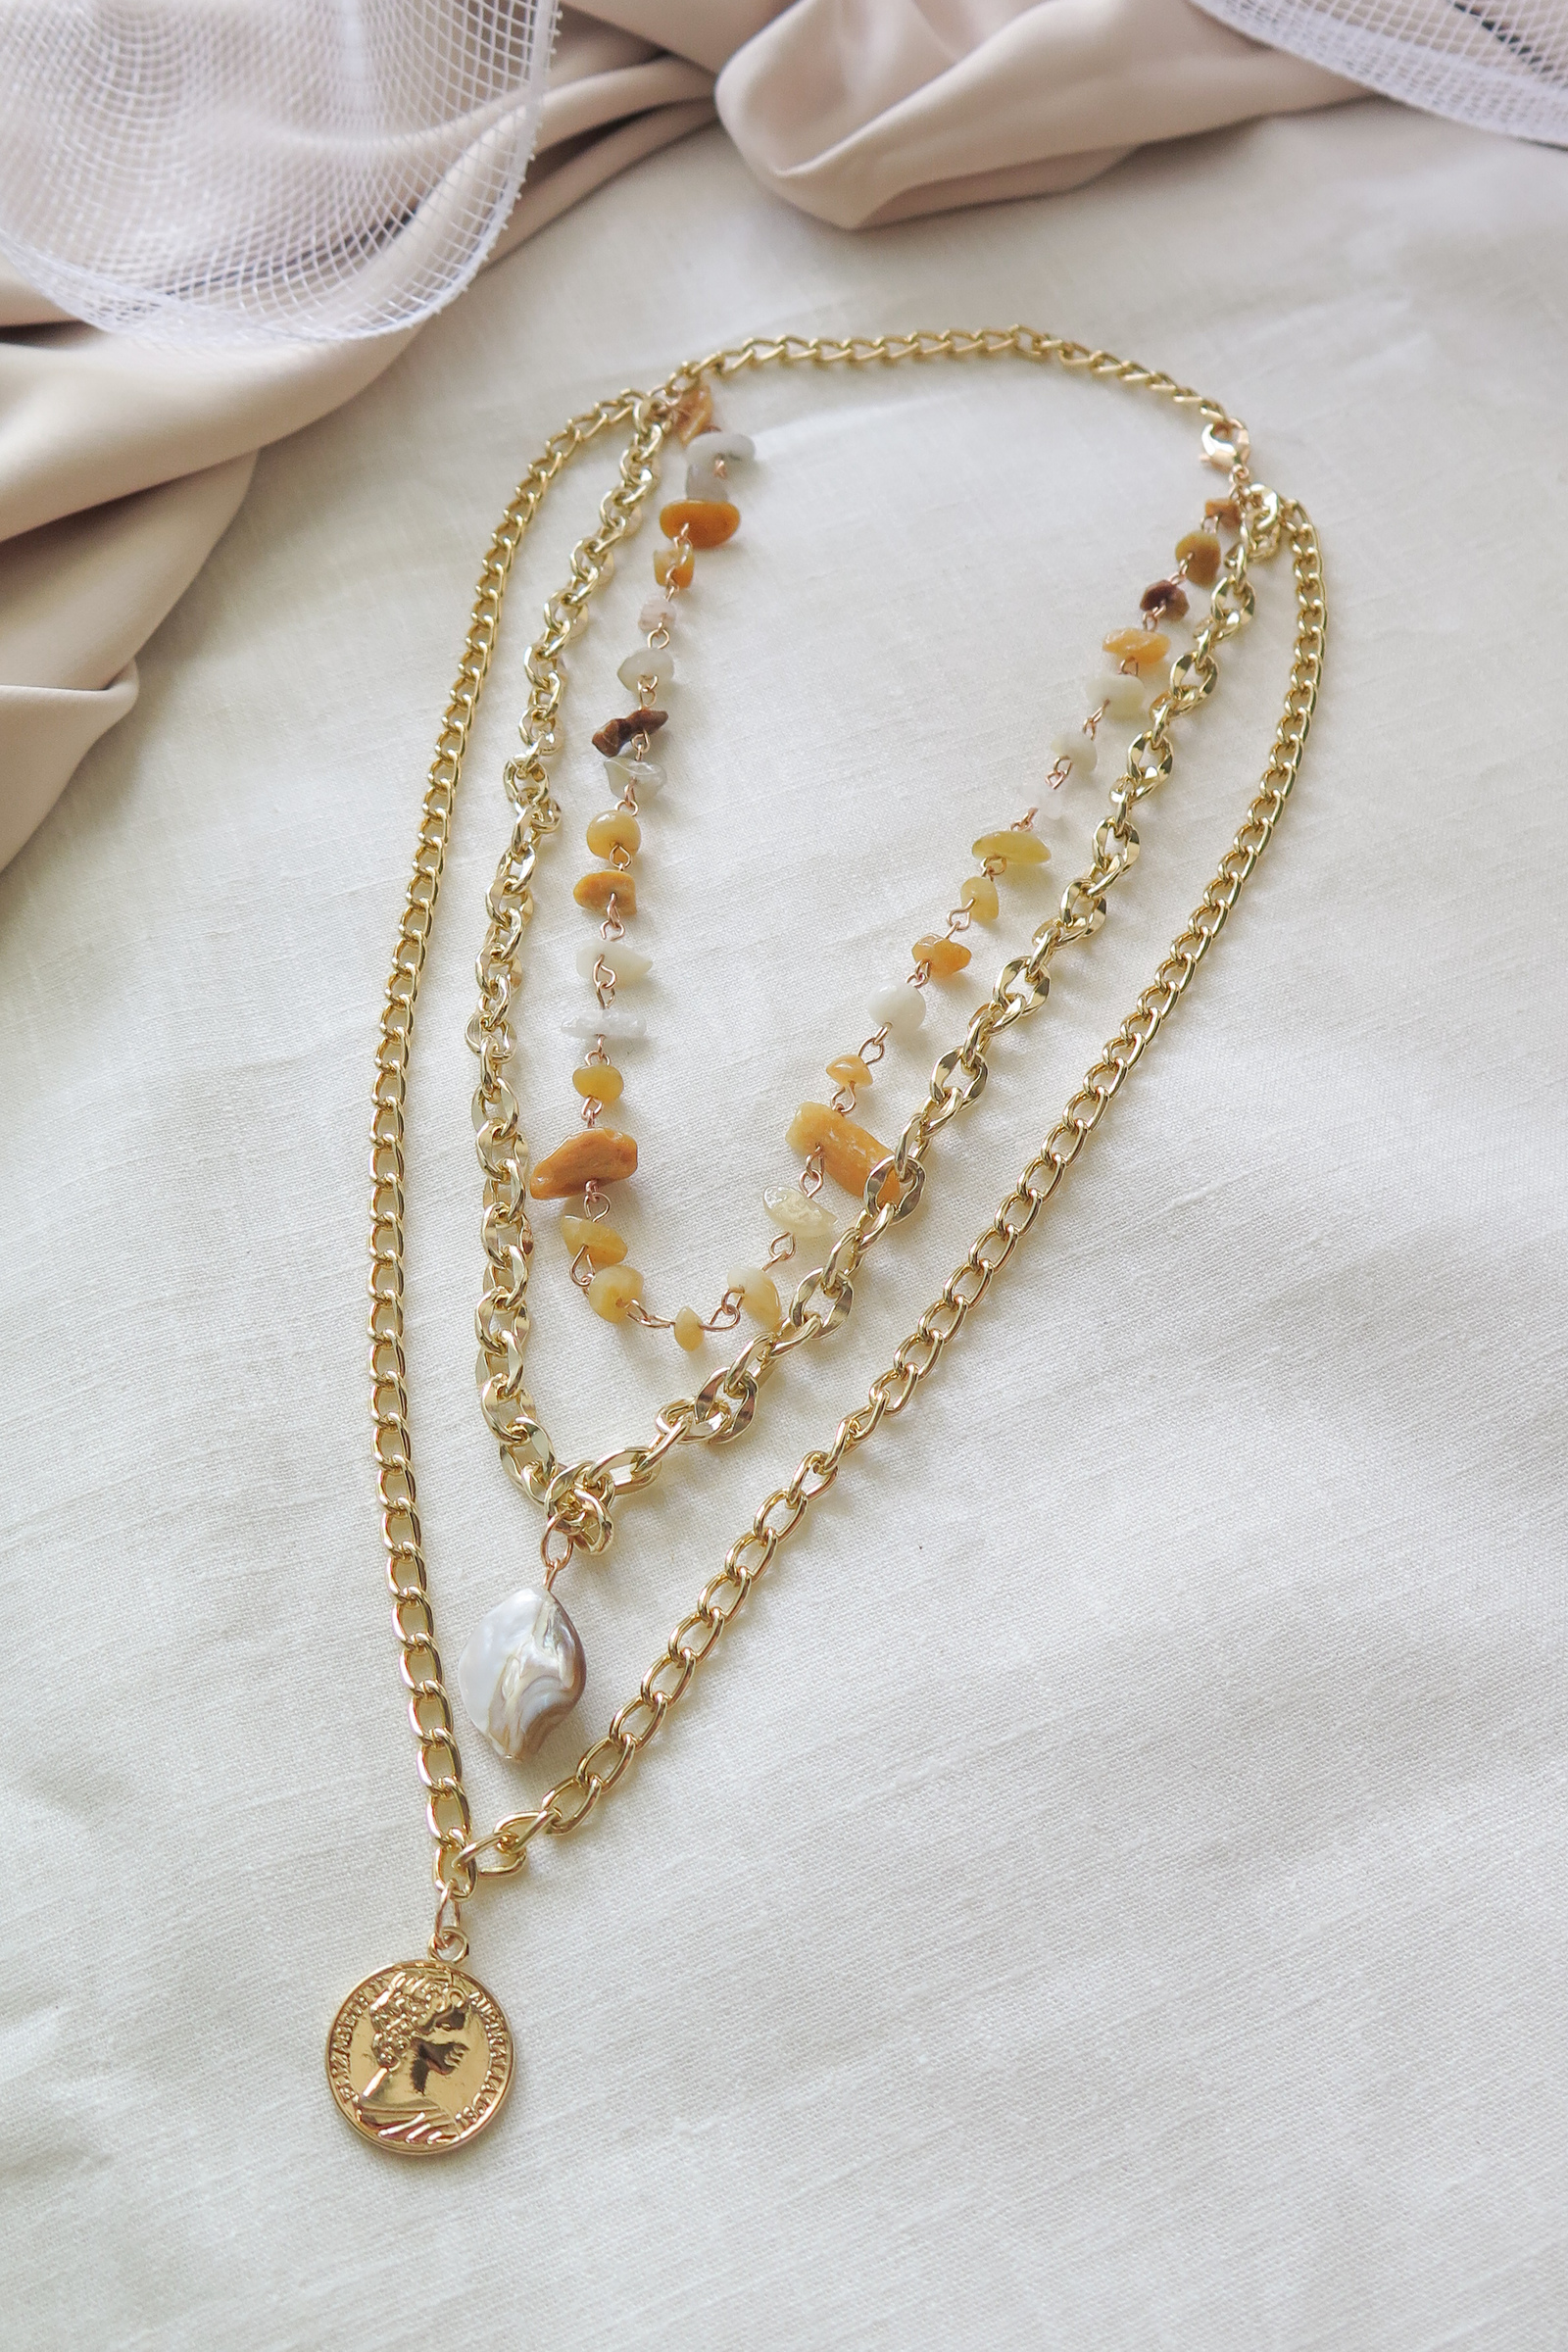 Arielle-layered-necklace.jpg